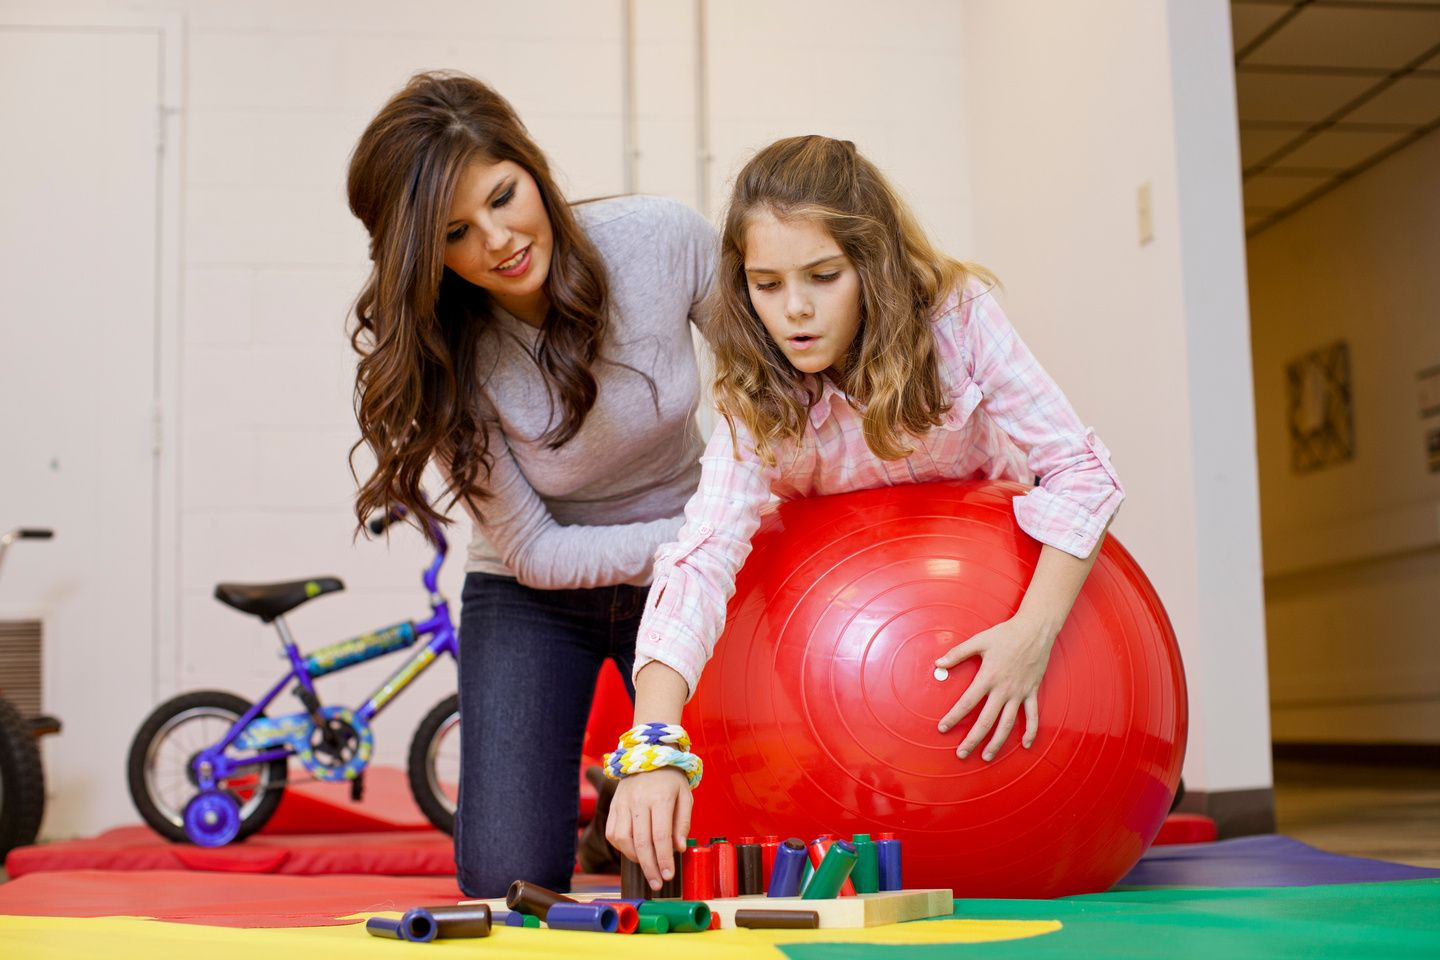 Motor Planning Lying On Therapy Ball To Do Activities Throw Balls Into Box Etc